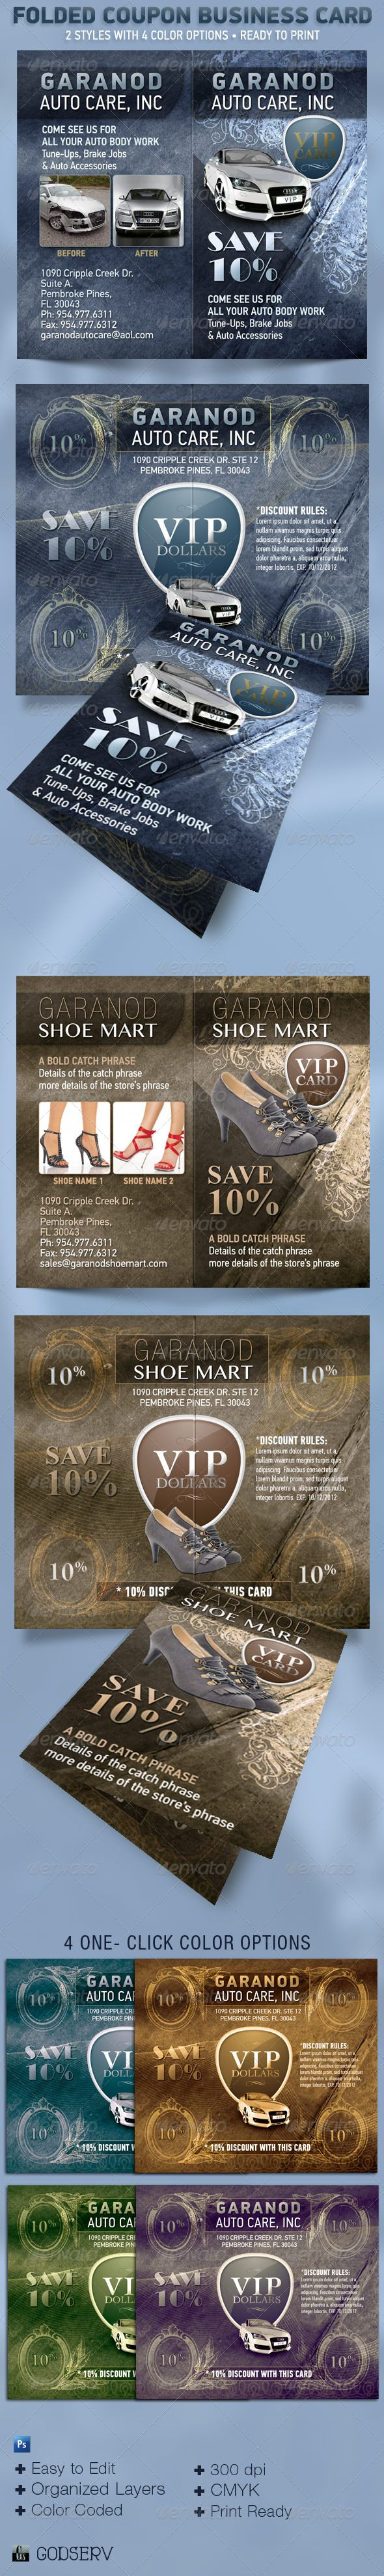 220 best business cards templates images on pinterest